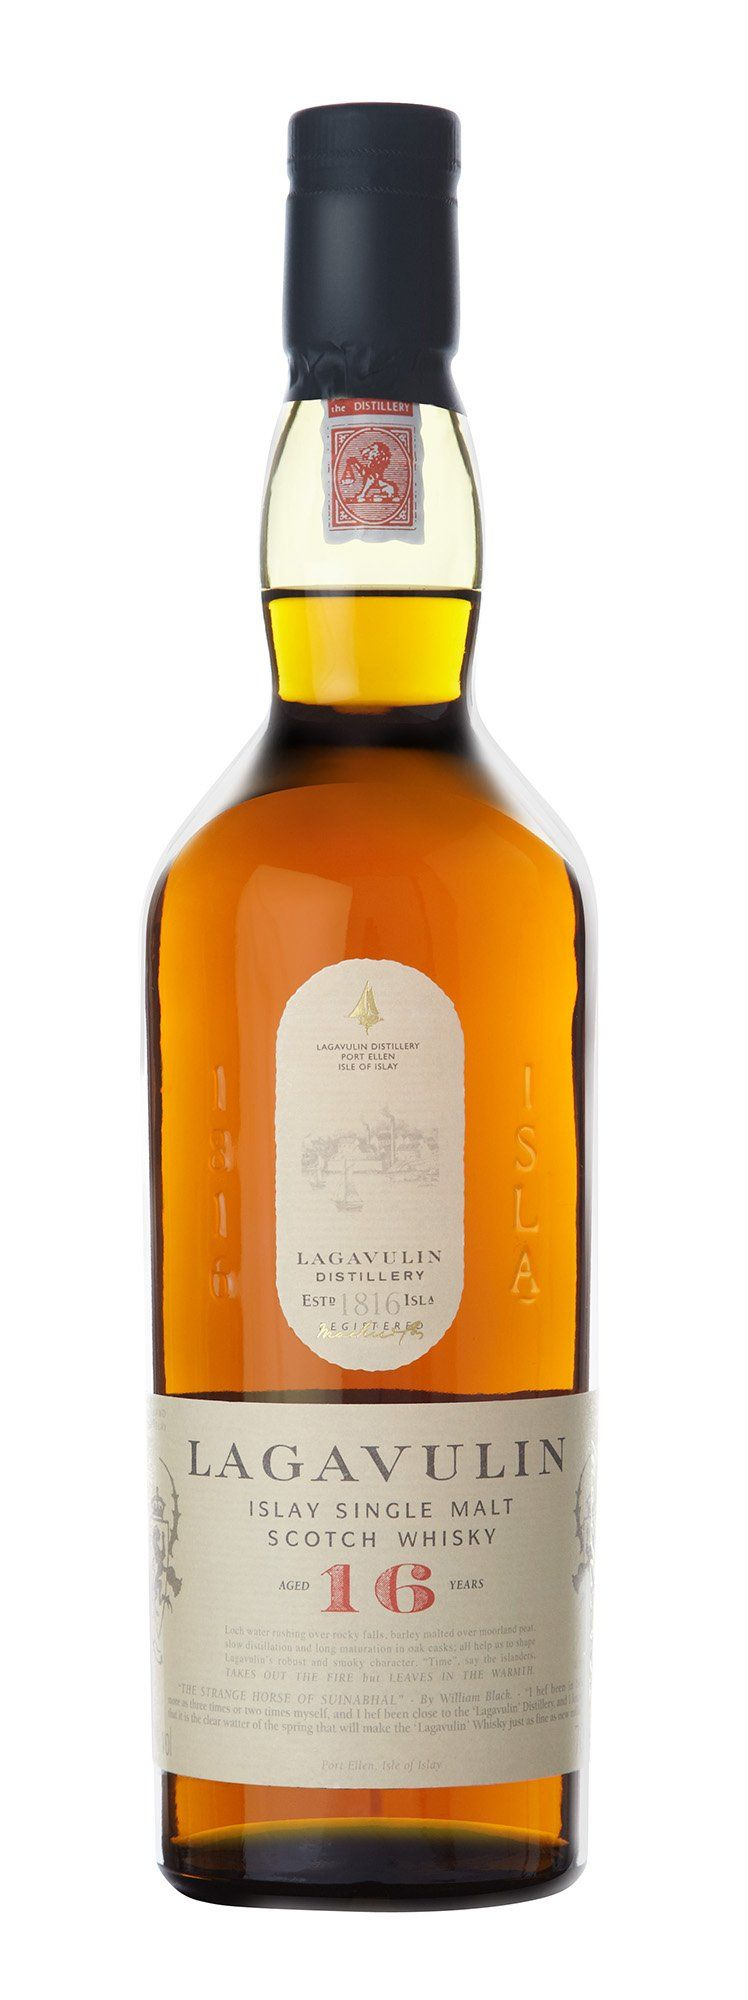 '16 years old' Islay single malt scotch whisky - Lagavulin